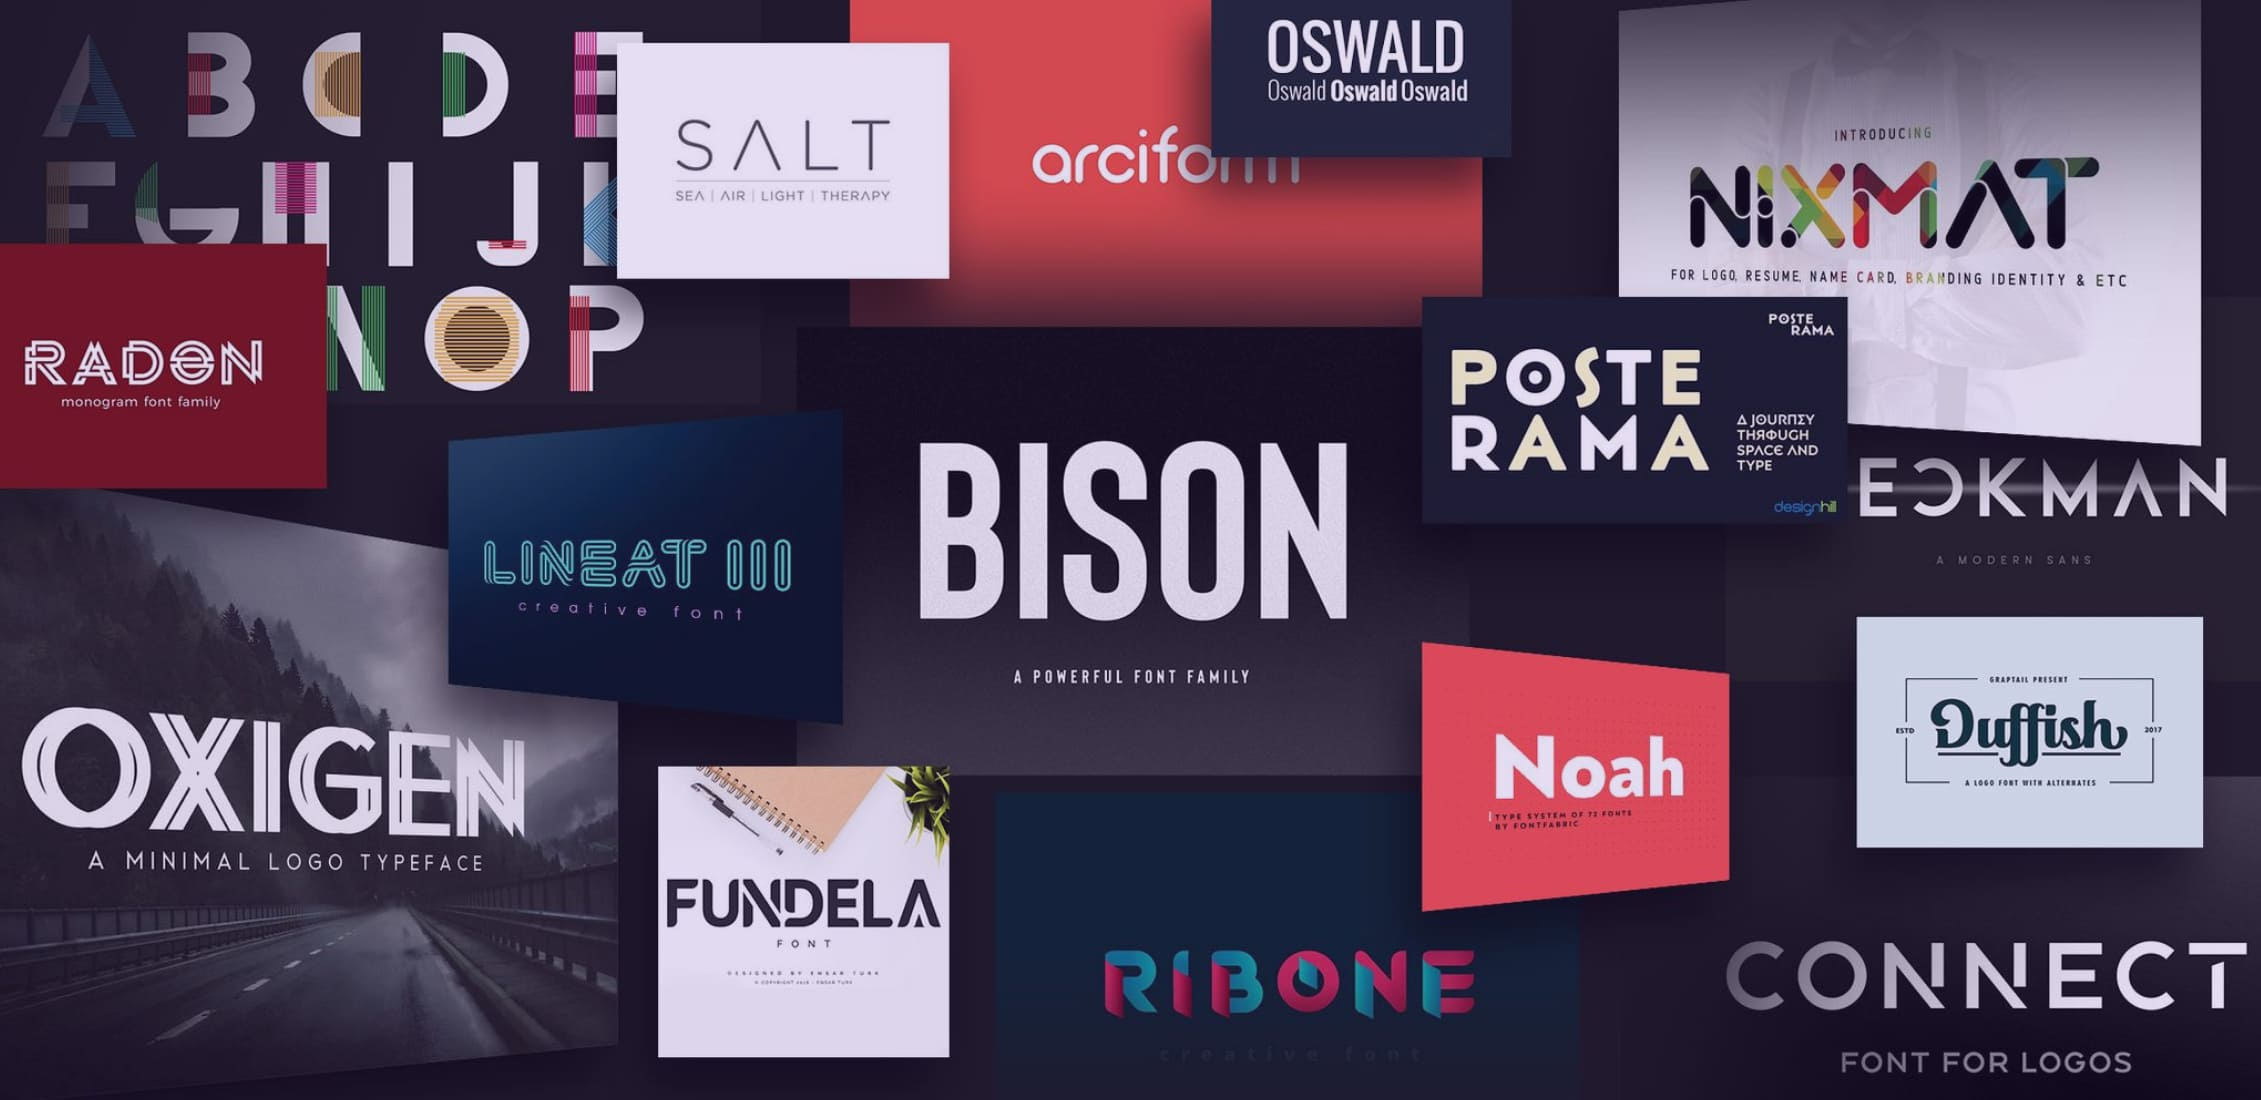 95+ Best Girly Fonts 2021: Free, Premium & Bundles - best logo fonts